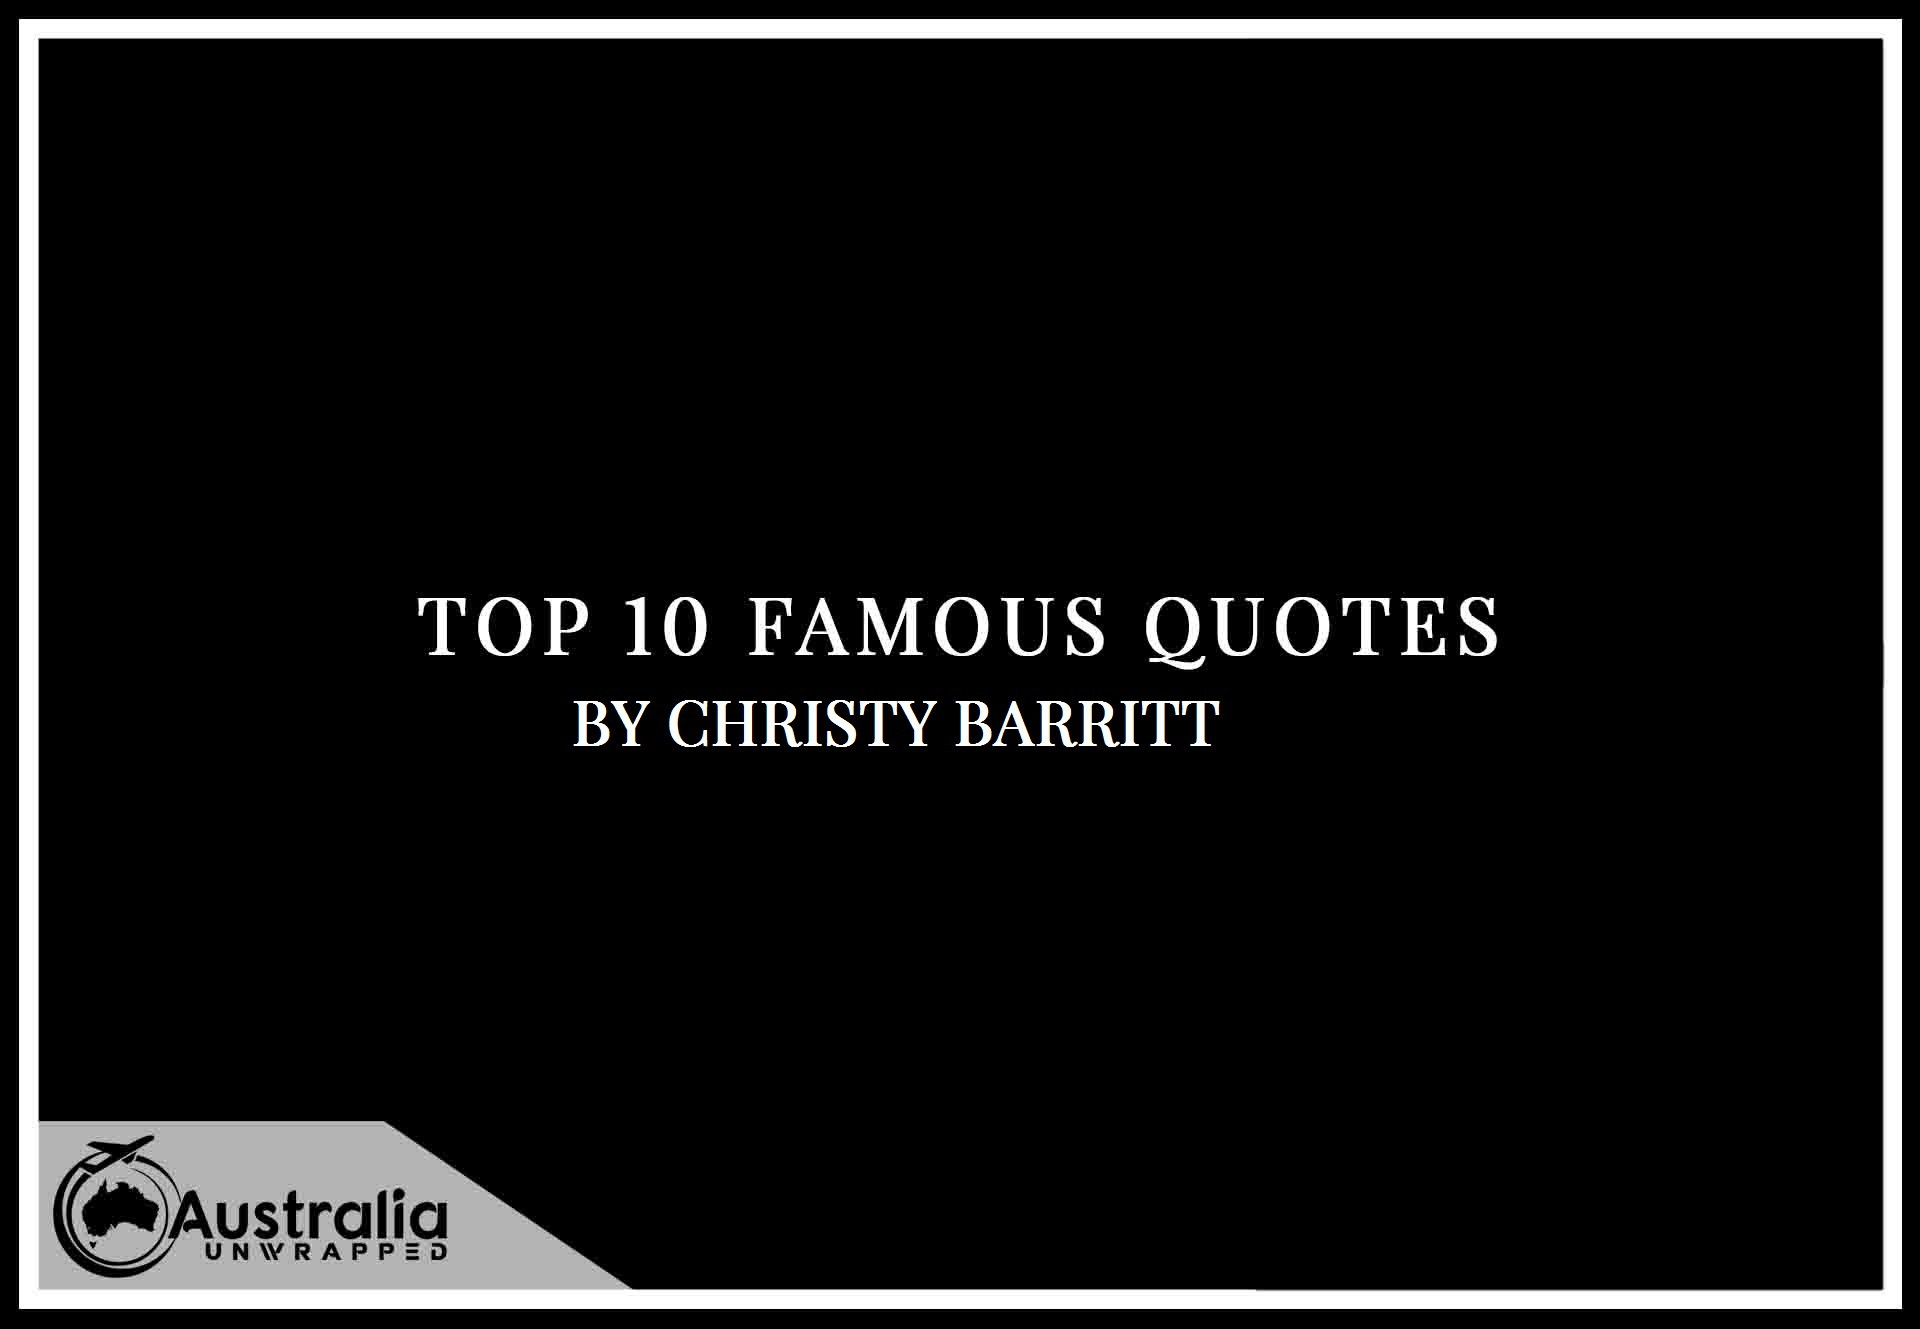 Christy Barritt's Top 10 Popular and Famous Quotes